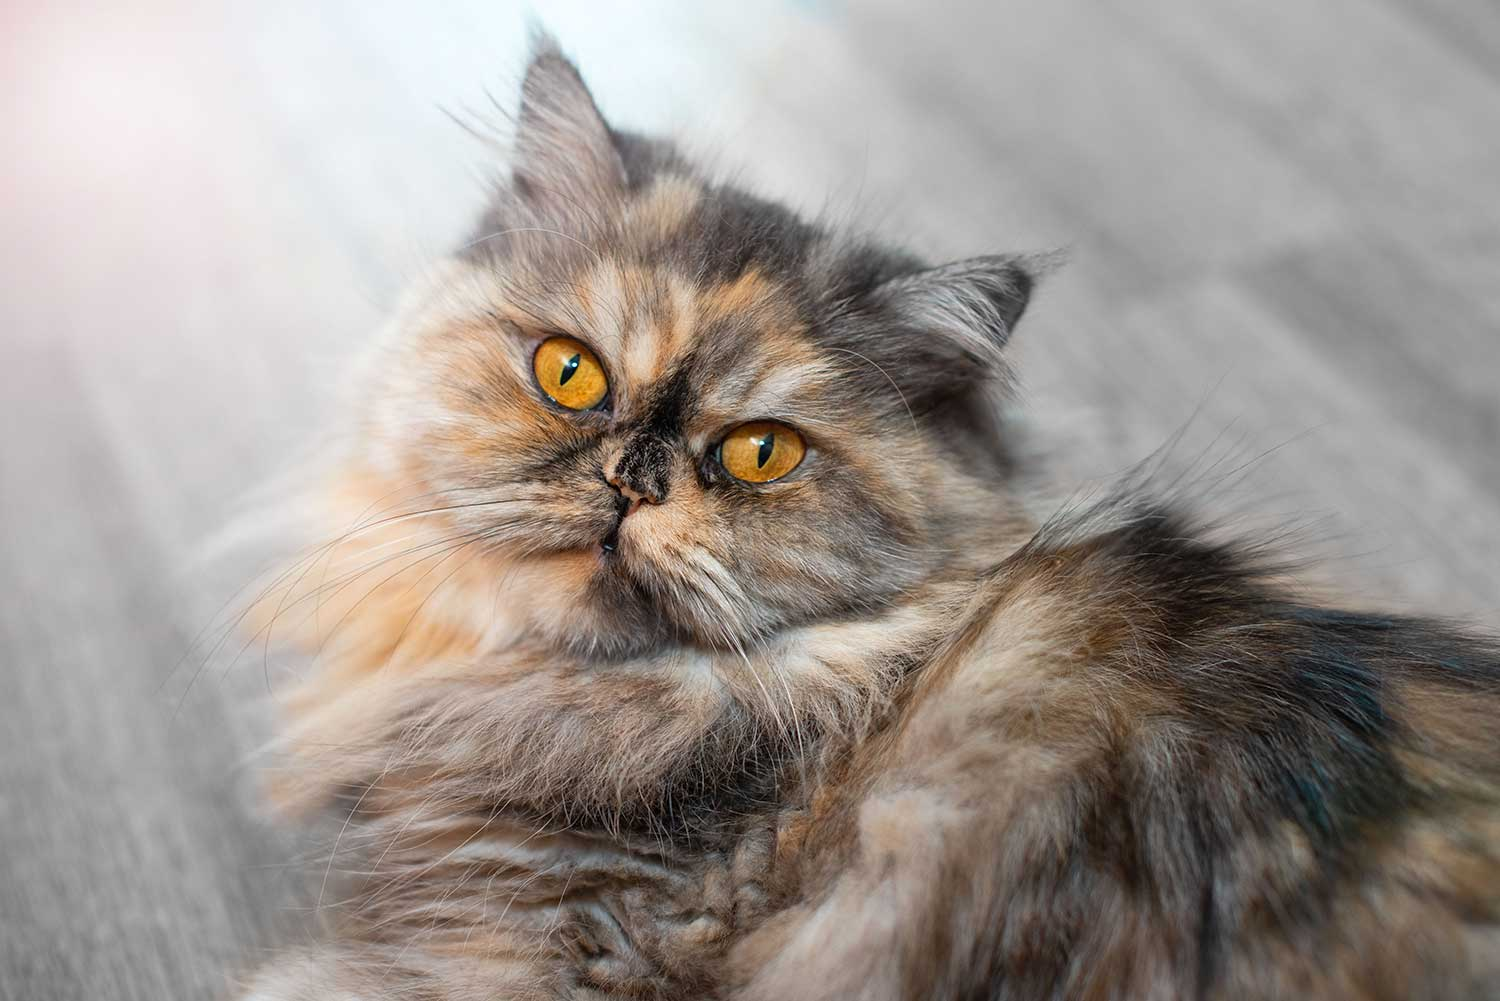 Persians are a naturally established cat breed